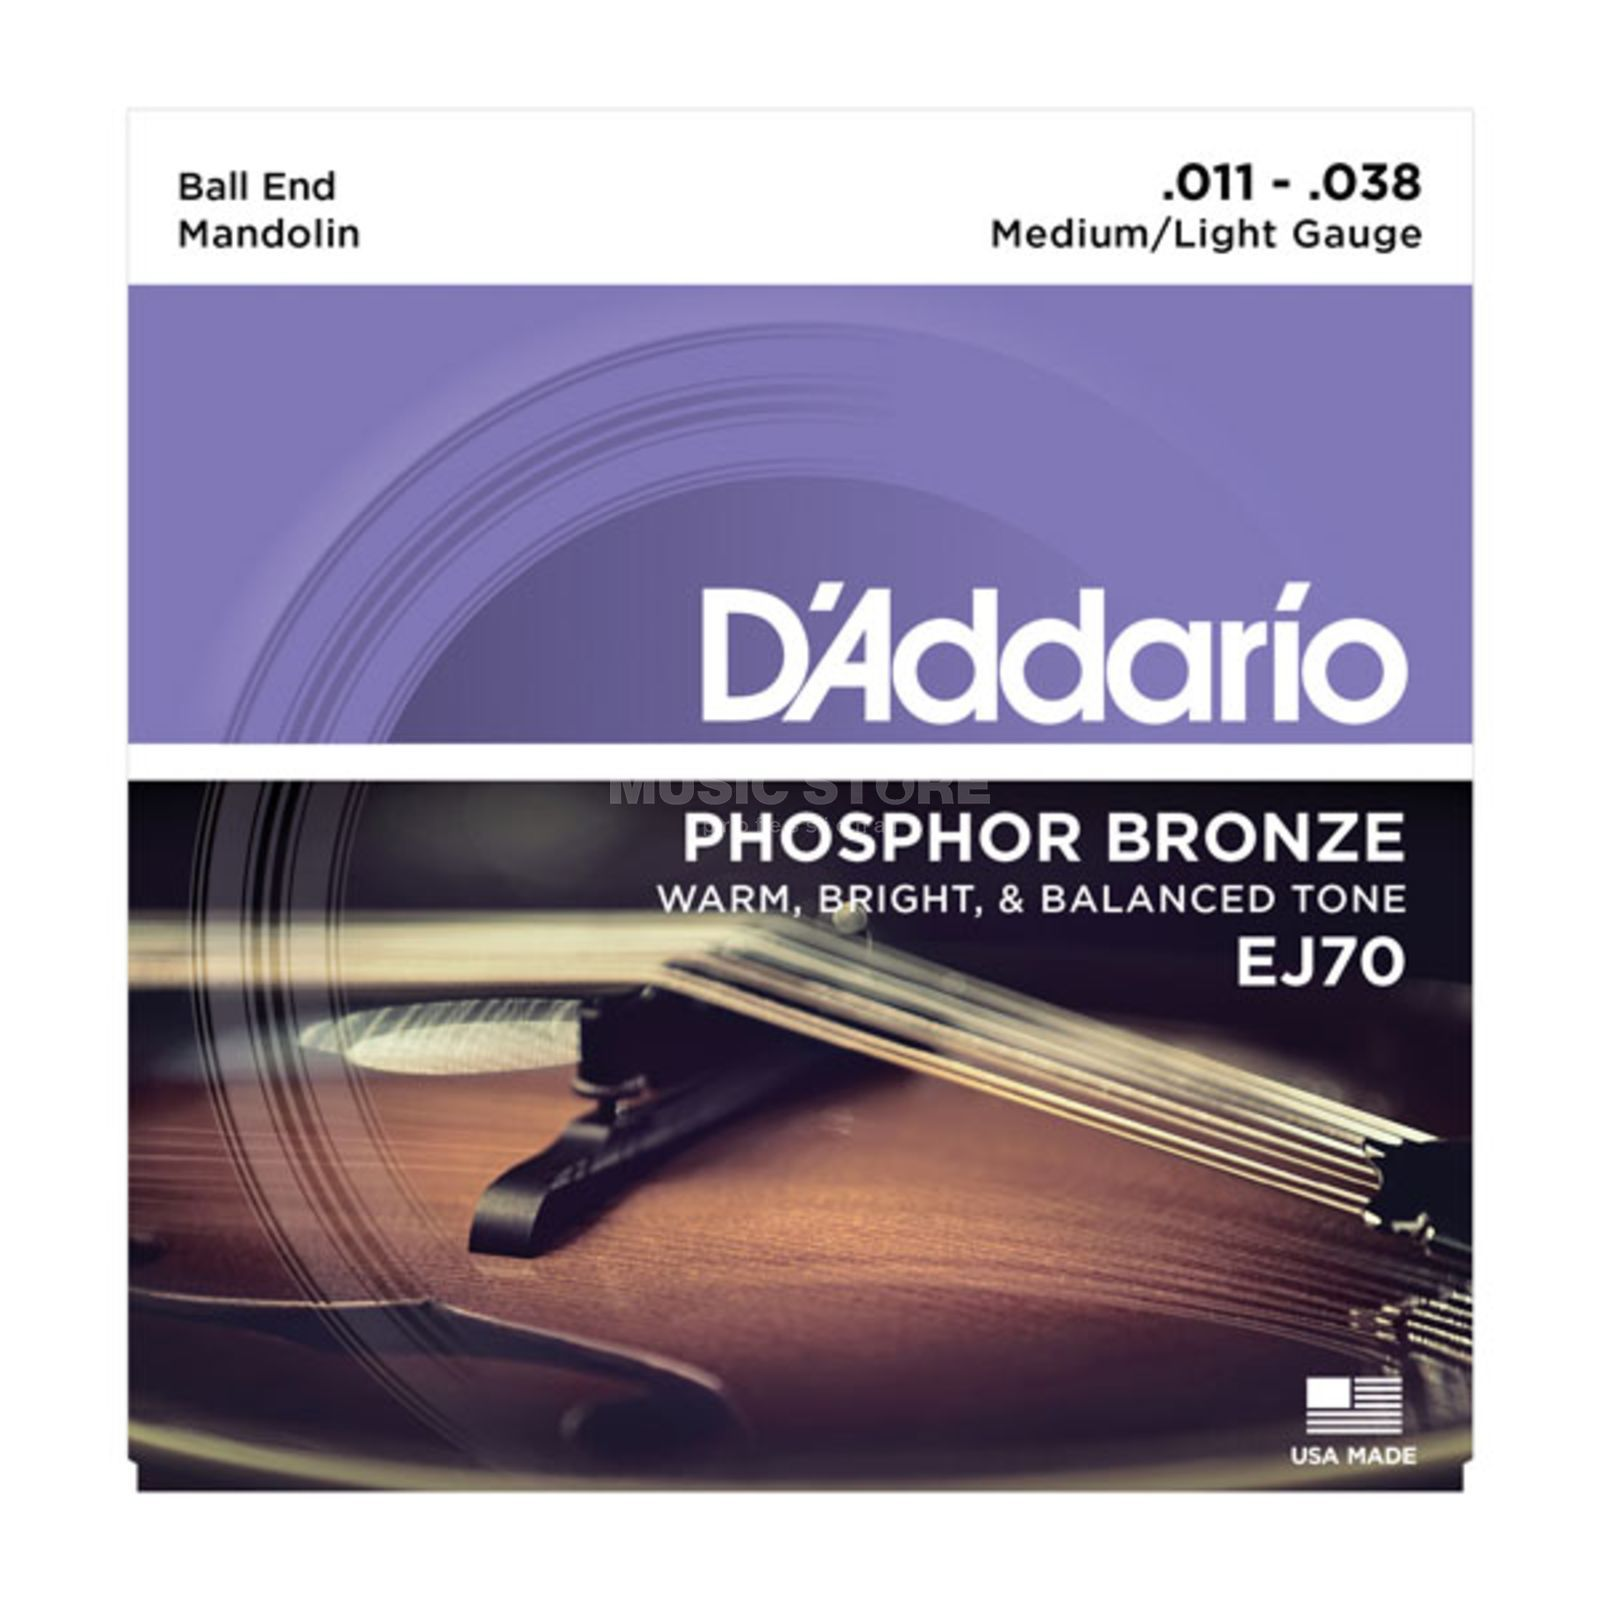 D'Addario Mandolin Strings  EJ70 11-38 Phosphor Bronze Ball End Produktbillede